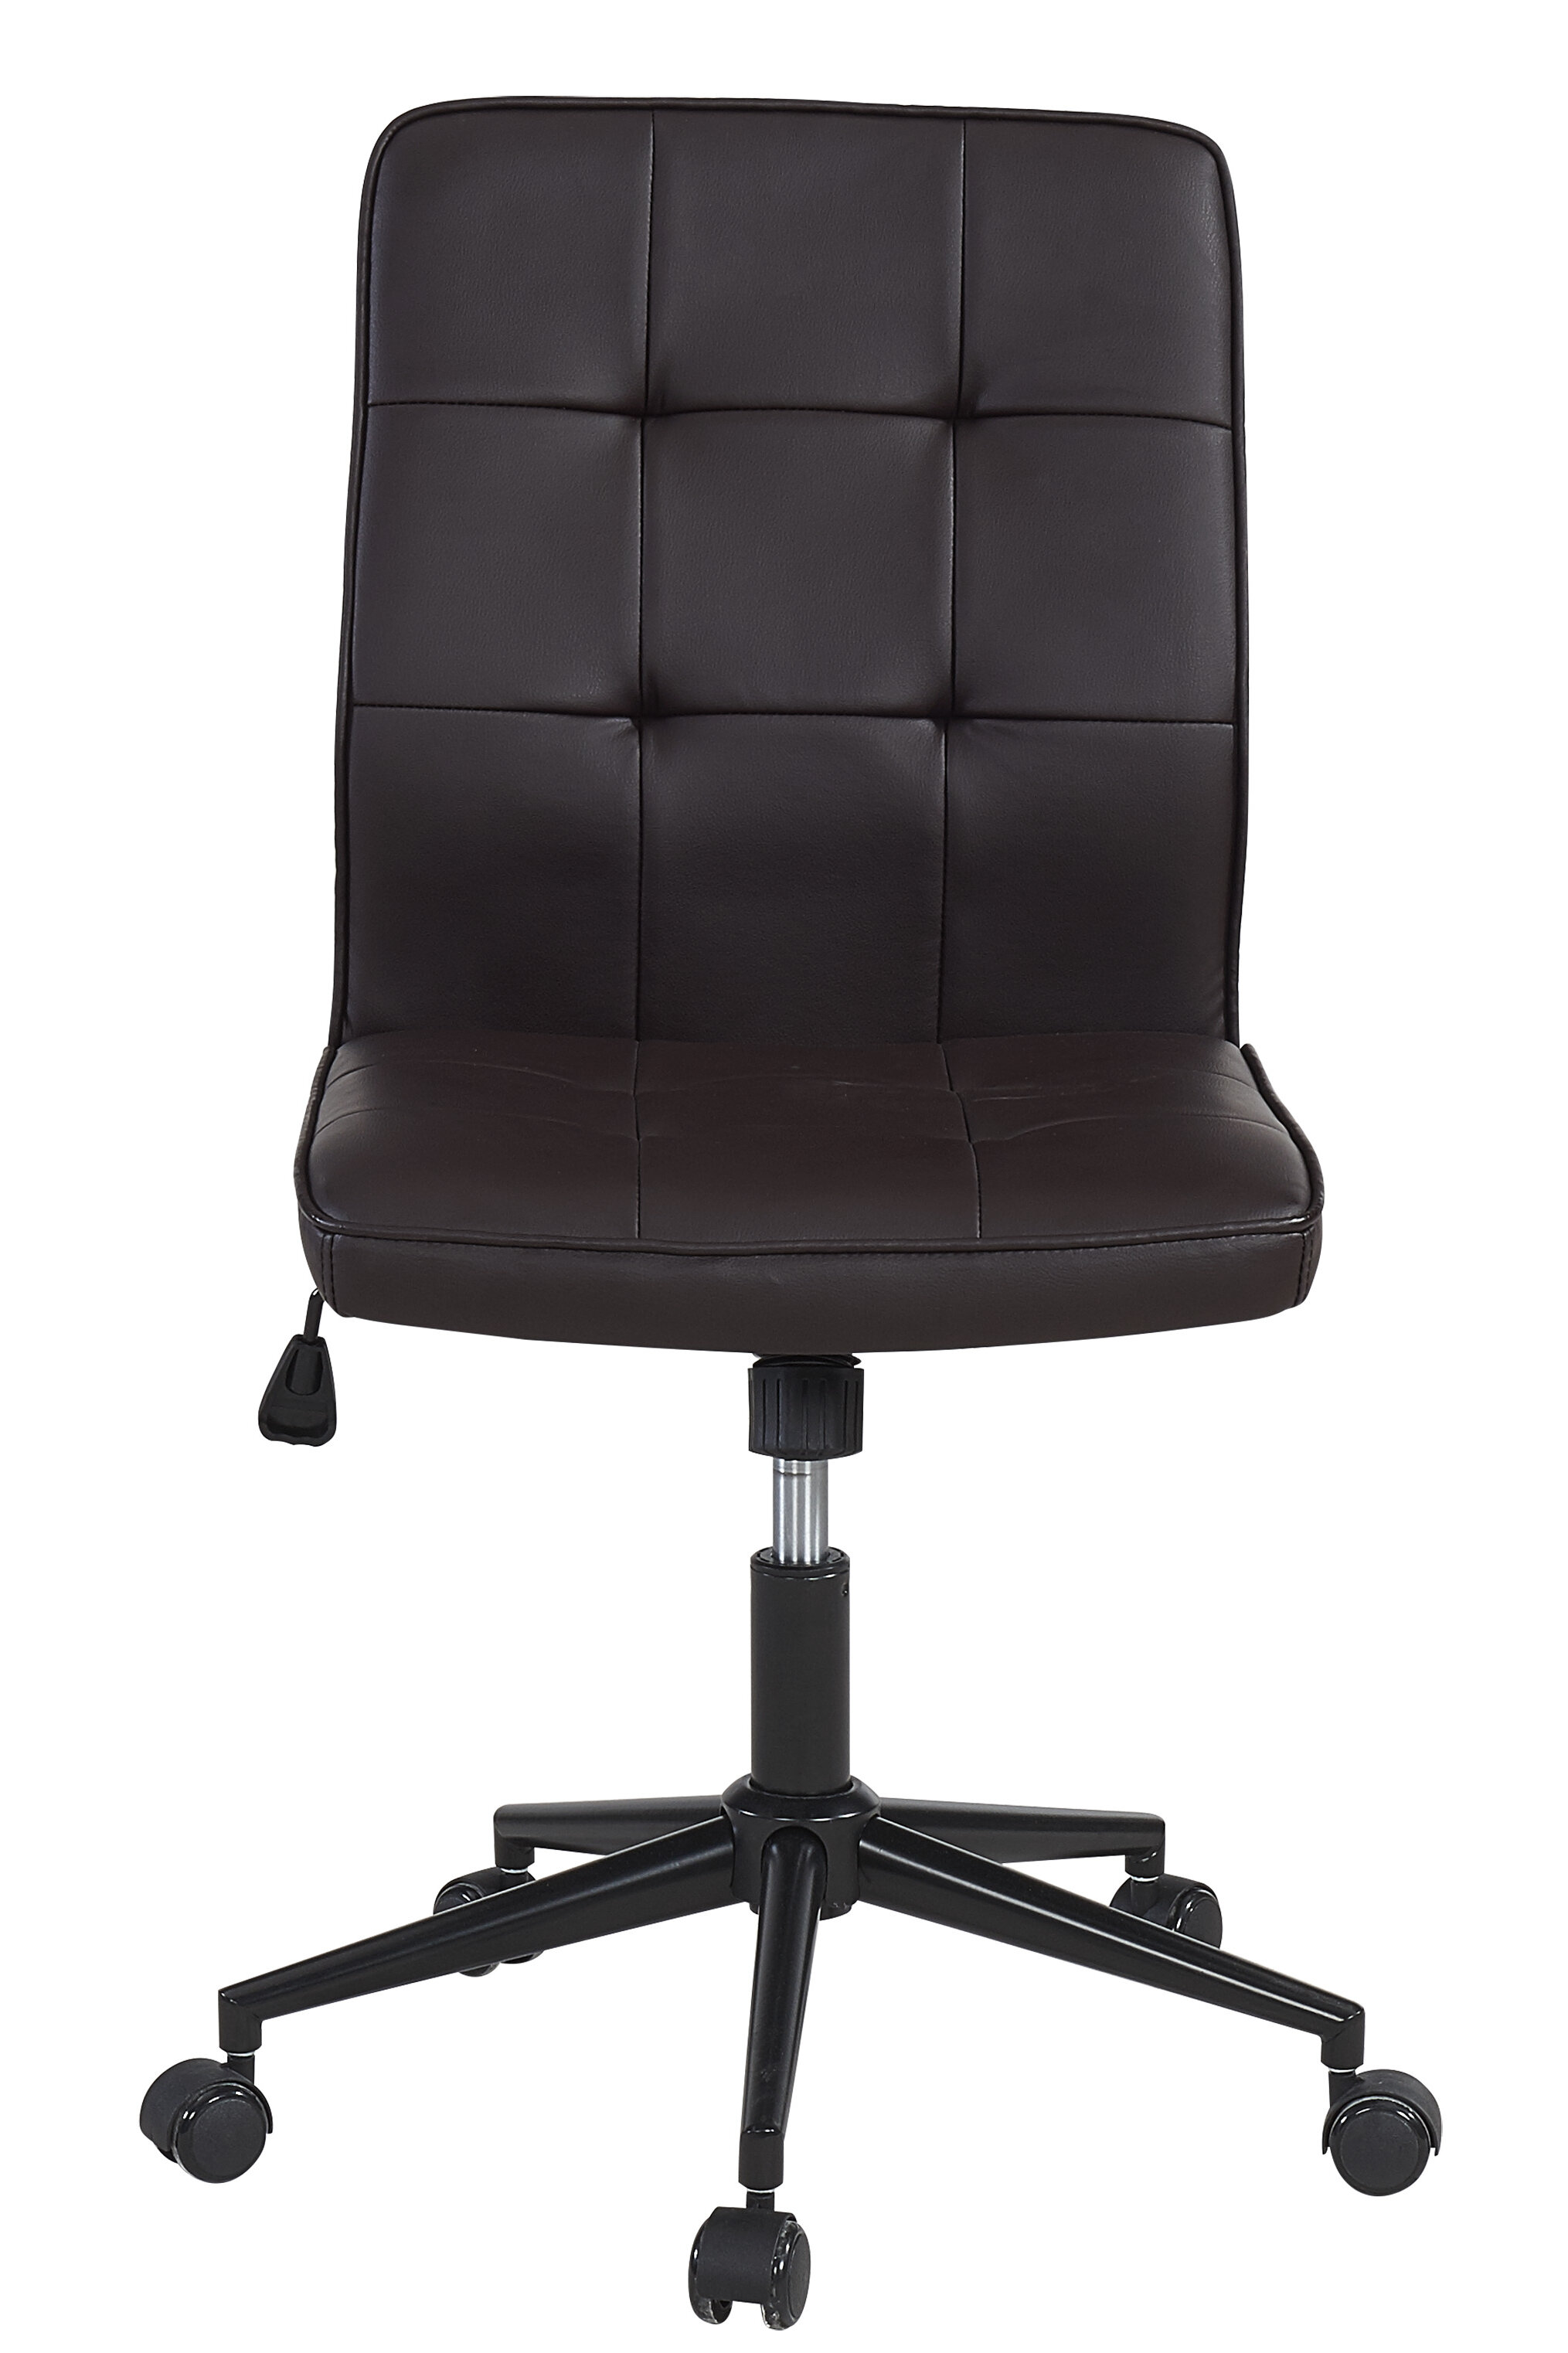 Shufelt Tufted Office Chair